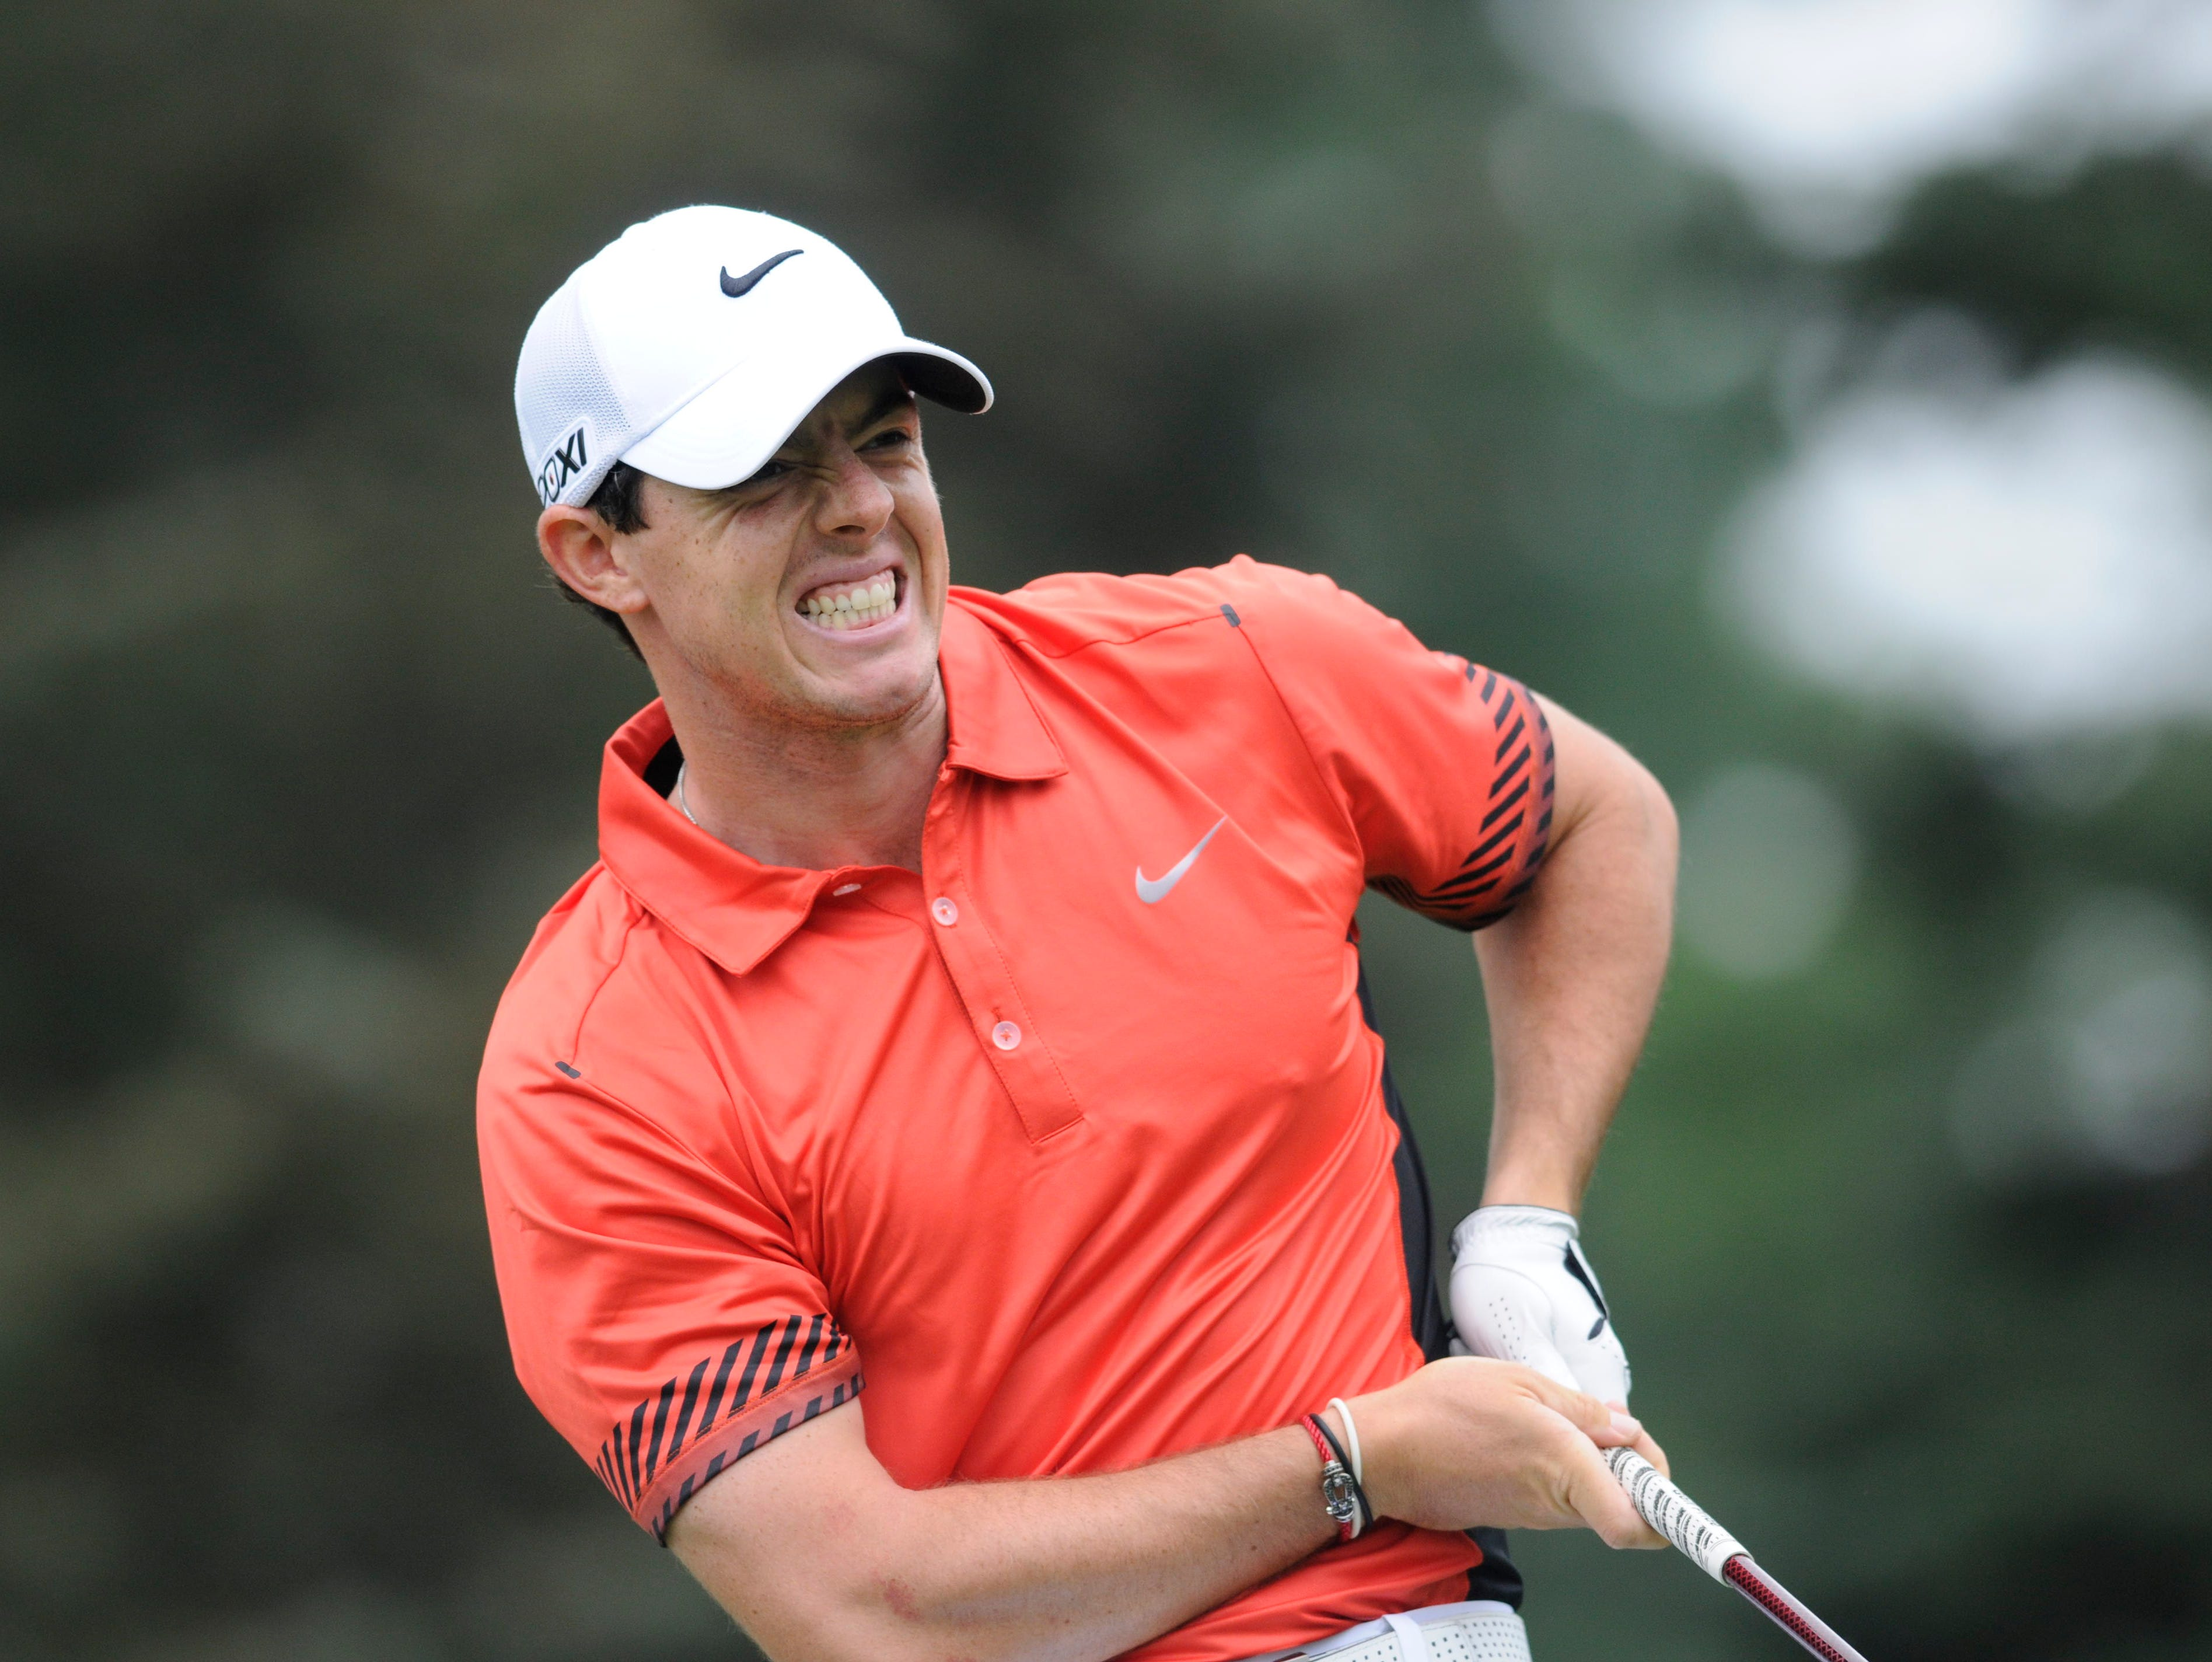 Rory McIlroy grimaces after his tee shot on the 7th hole.